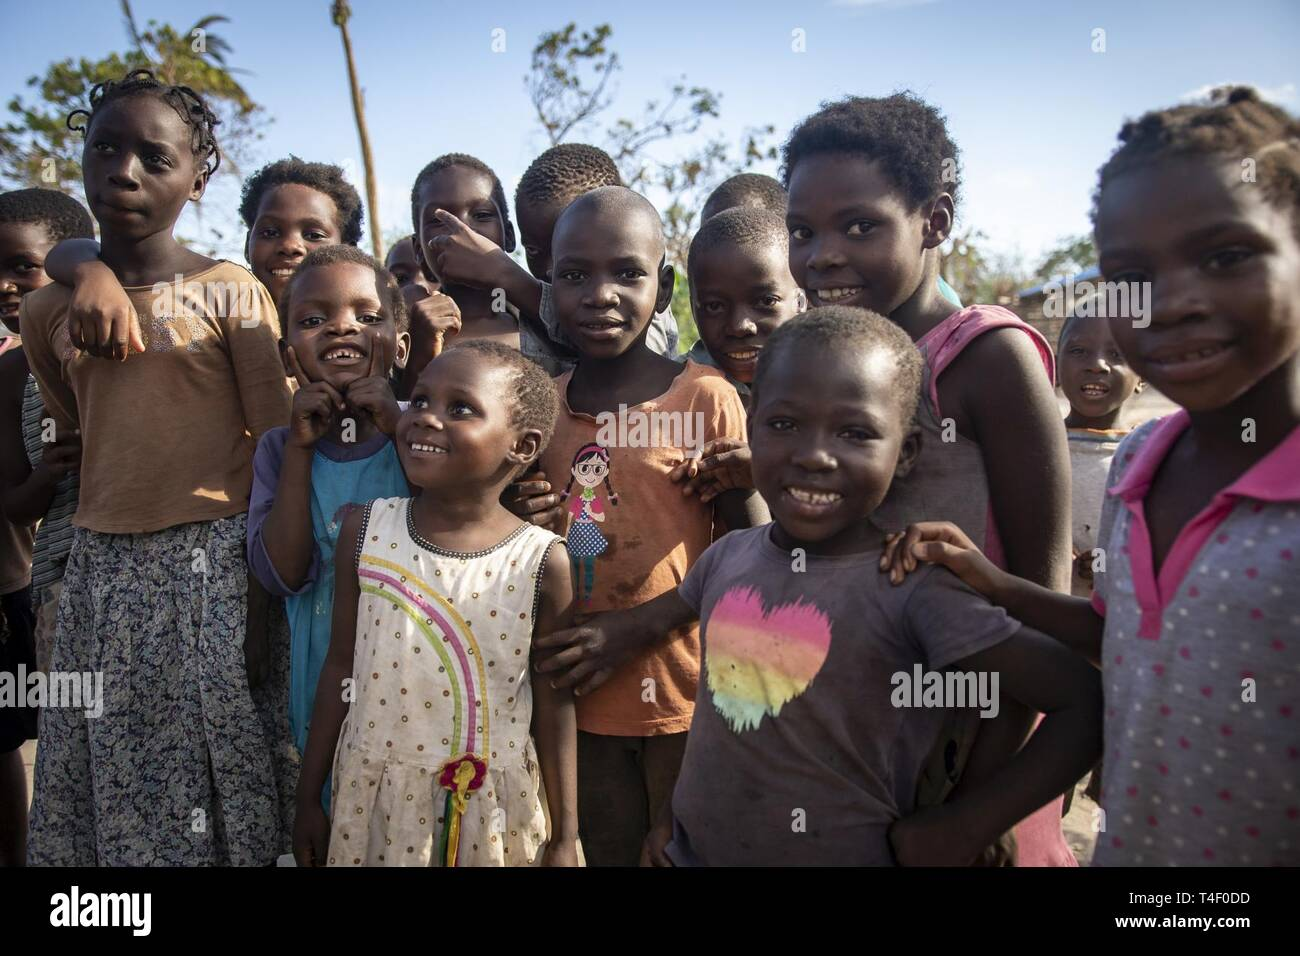 Children pose for a picture as their parents wait for food aid to be distributed in Nhagau, Mozambique, April 6, 2019. Combined Joint Task Force-Horn of Africa is helping meet requirements identified by U.S. Agency for International Development (USAID) assessment teams and humanitarian organizations working in the region by providing logistics support and manpower to USAID at the request of the Government of the Republic of Mozambique. - Stock Image